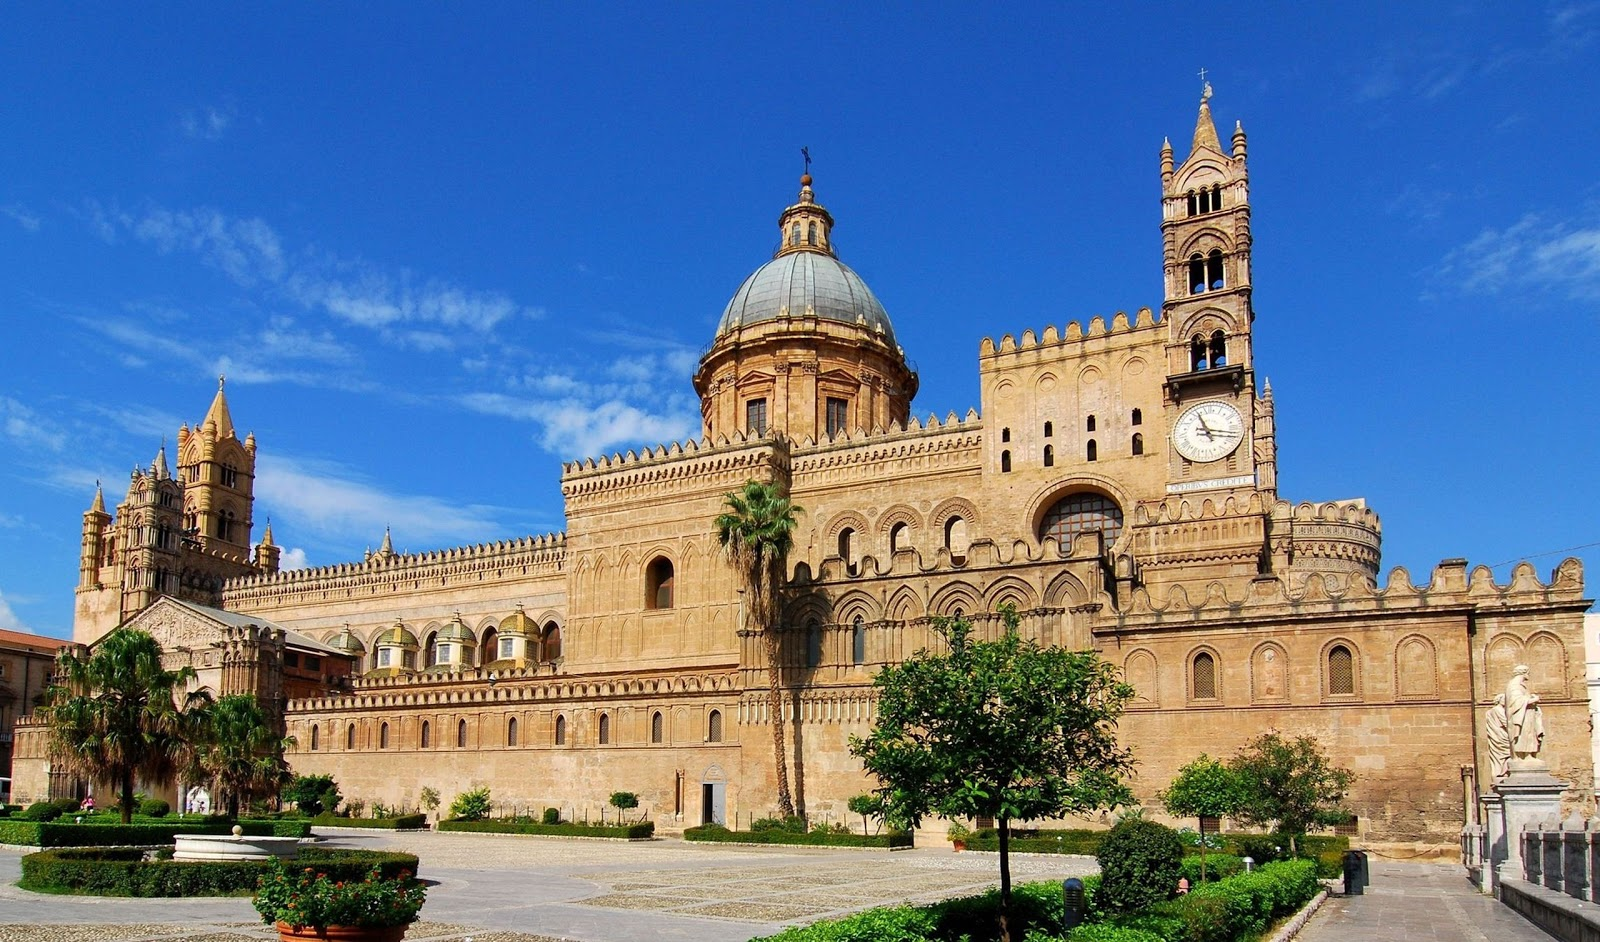 palermo italy tourist information - photo#5